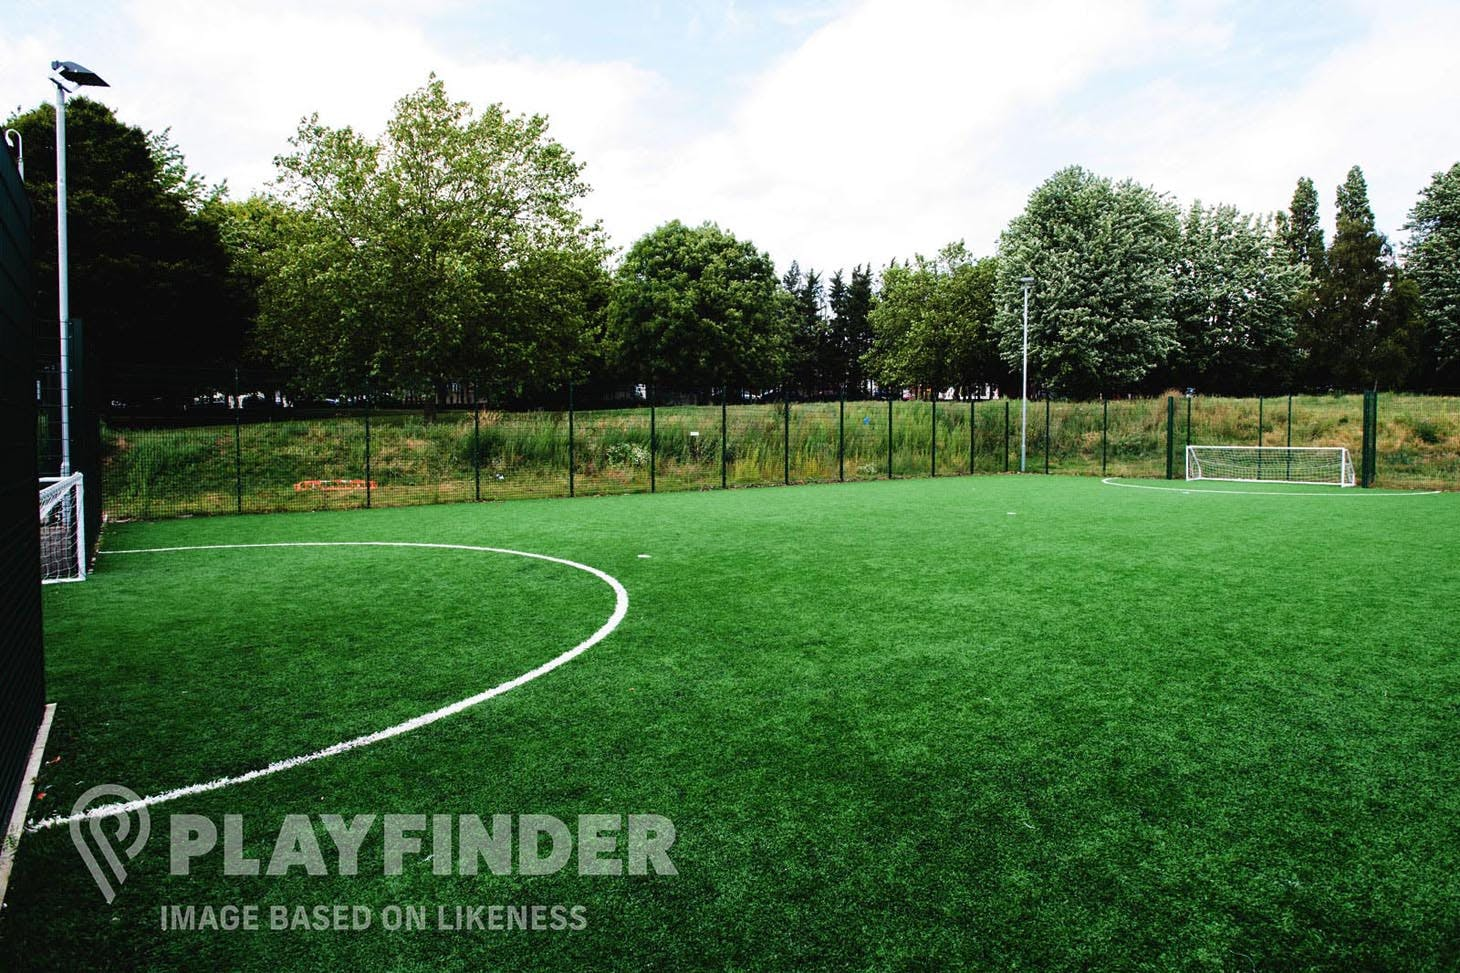 Ark Bermondsey - 5aside.org 5 a side | 3G Astroturf football pitch